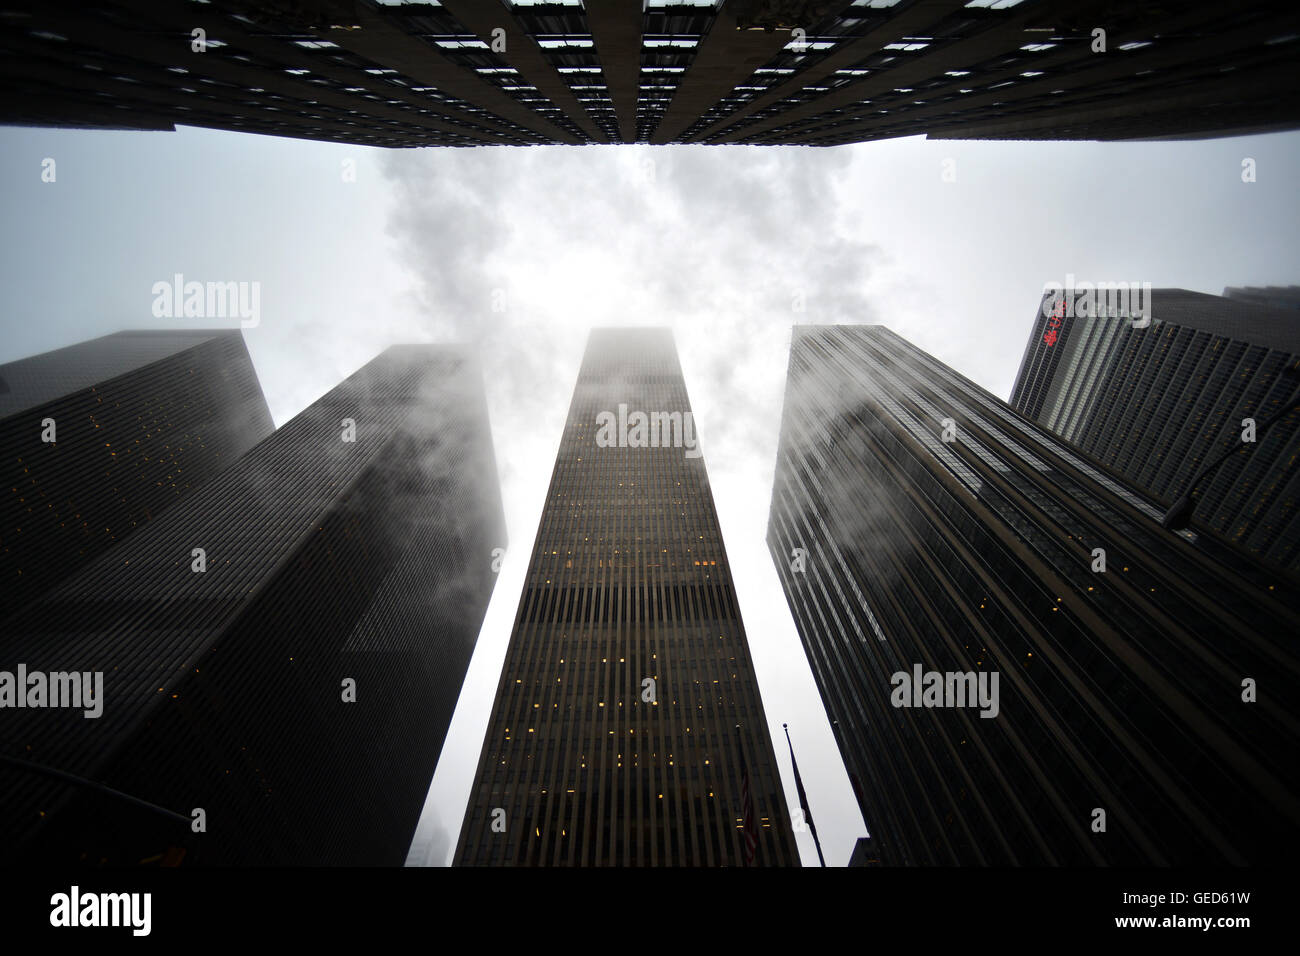 Bleak New York skyscrapers with winter steam - Stock Image